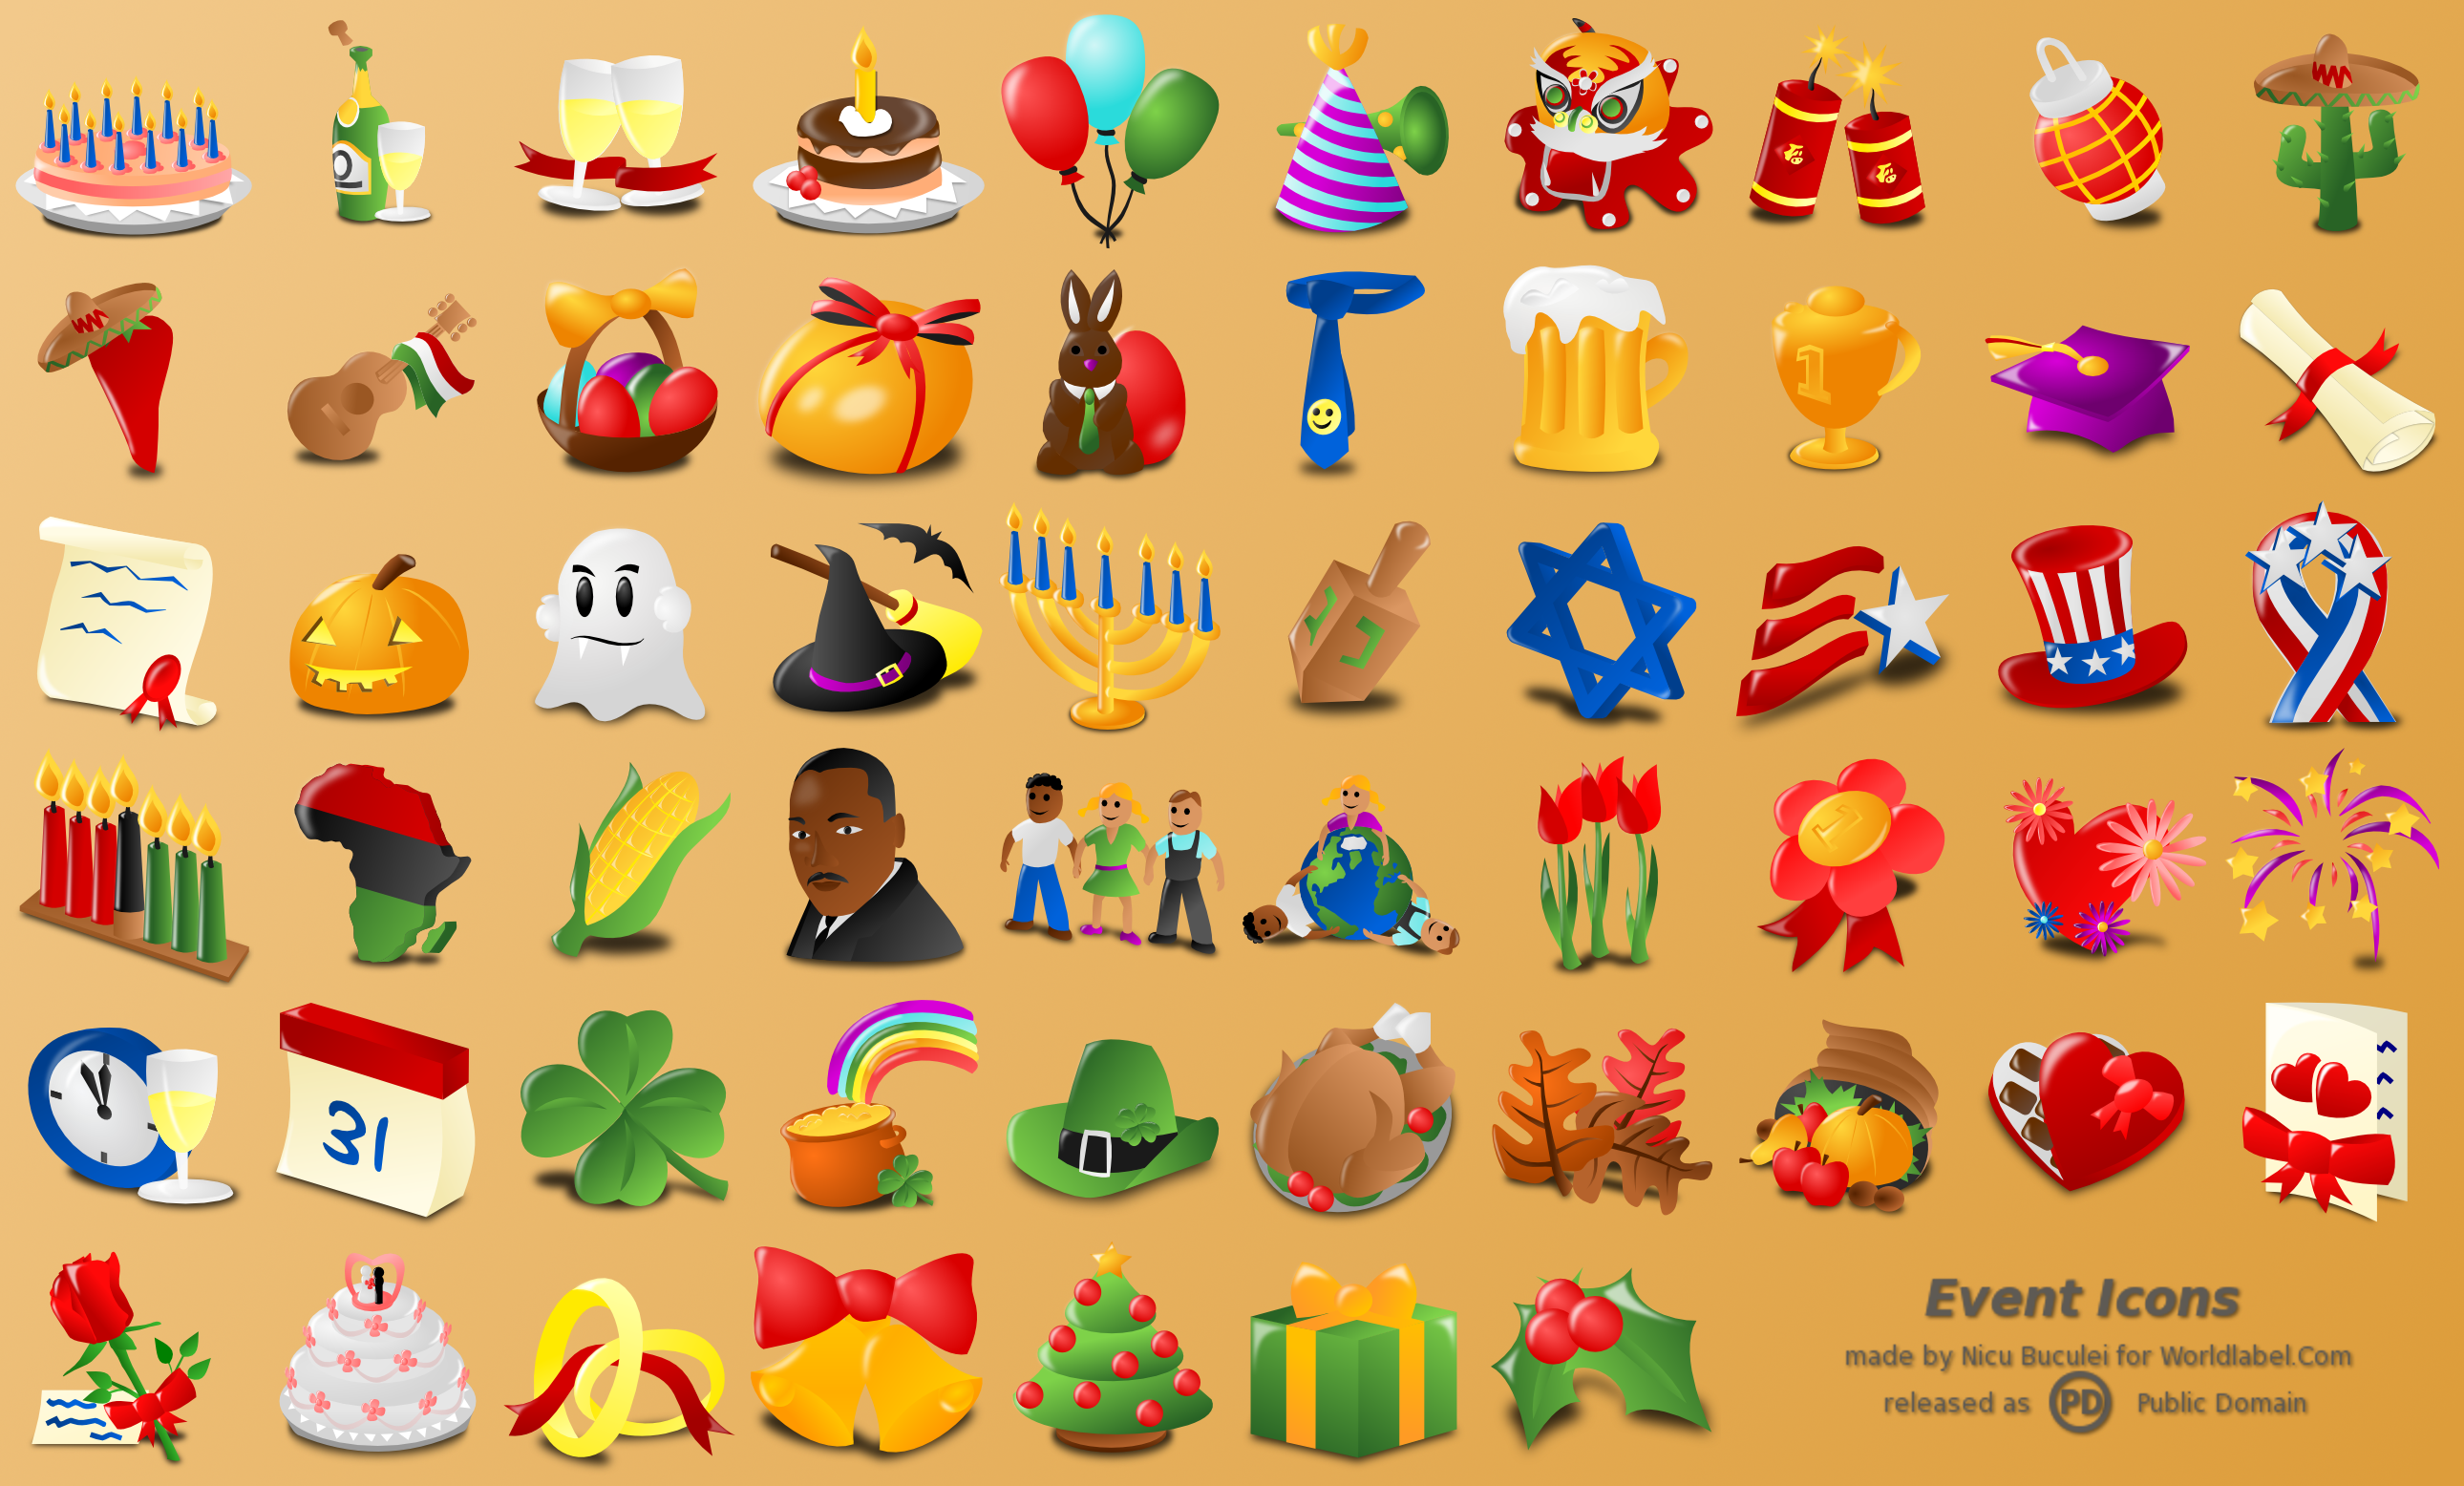 Free Web Icons for Events, Holidays & Occasions.